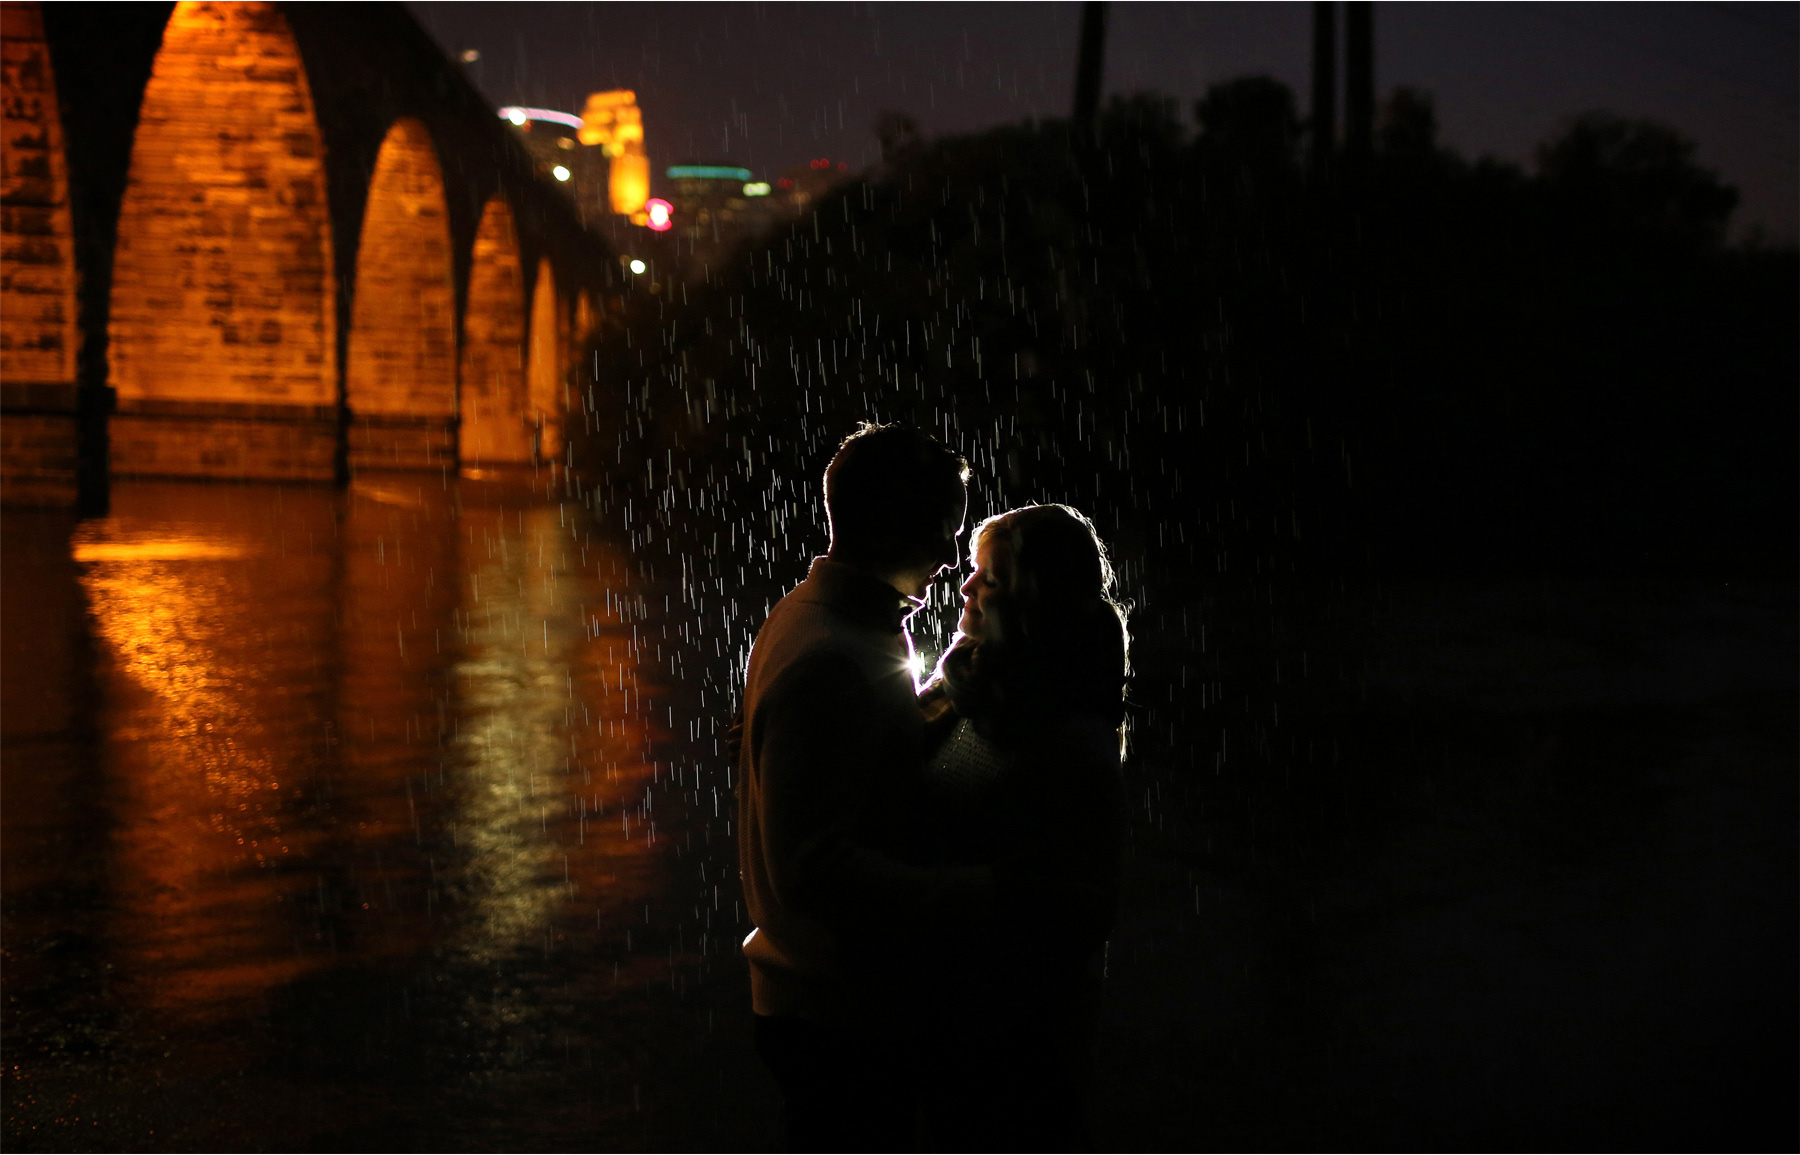 13-Minneapolis-Minnesota-Wedding-Photographer-by-Andrew-Vick-Photography-Fall-Autumn-Engagement-Bride-Groom-Downtown-Skyline-Stone-Arch-Bridge-Night-Embrace-Mississippi-River-Rain-Mallory-and-Kyle.jpg